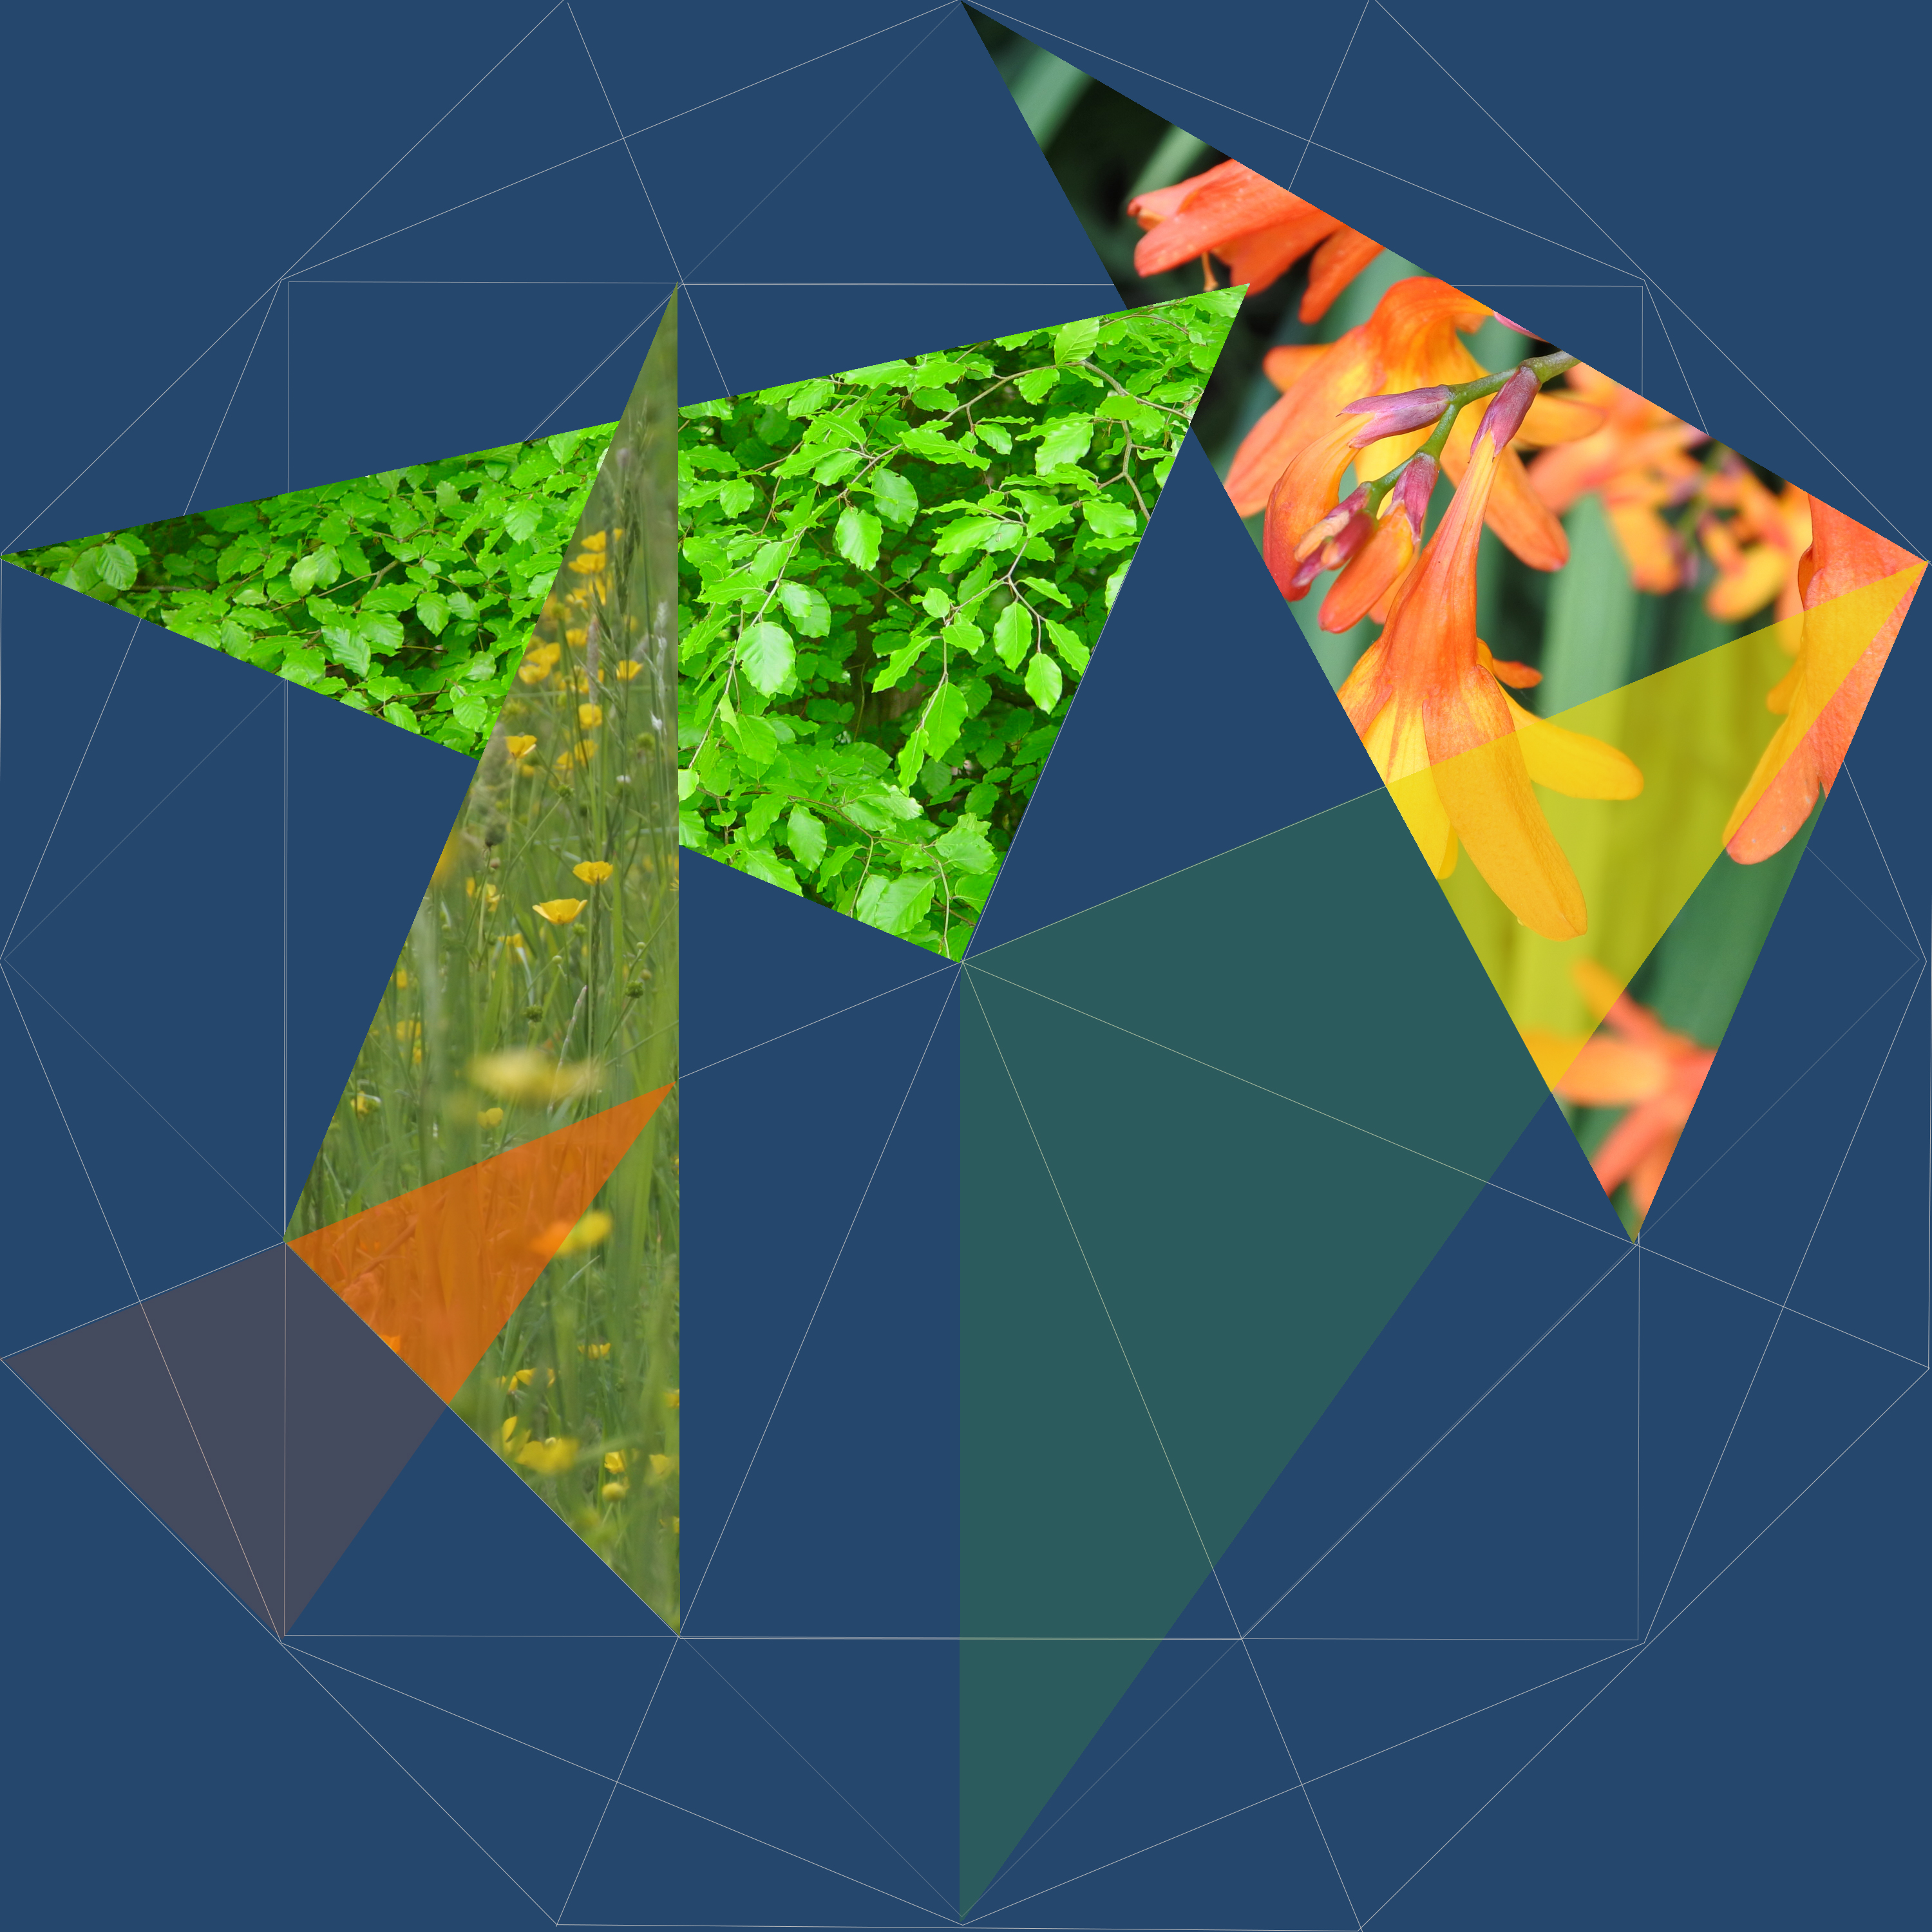 5 Triangles with leaves, spring grasses and orange flowers